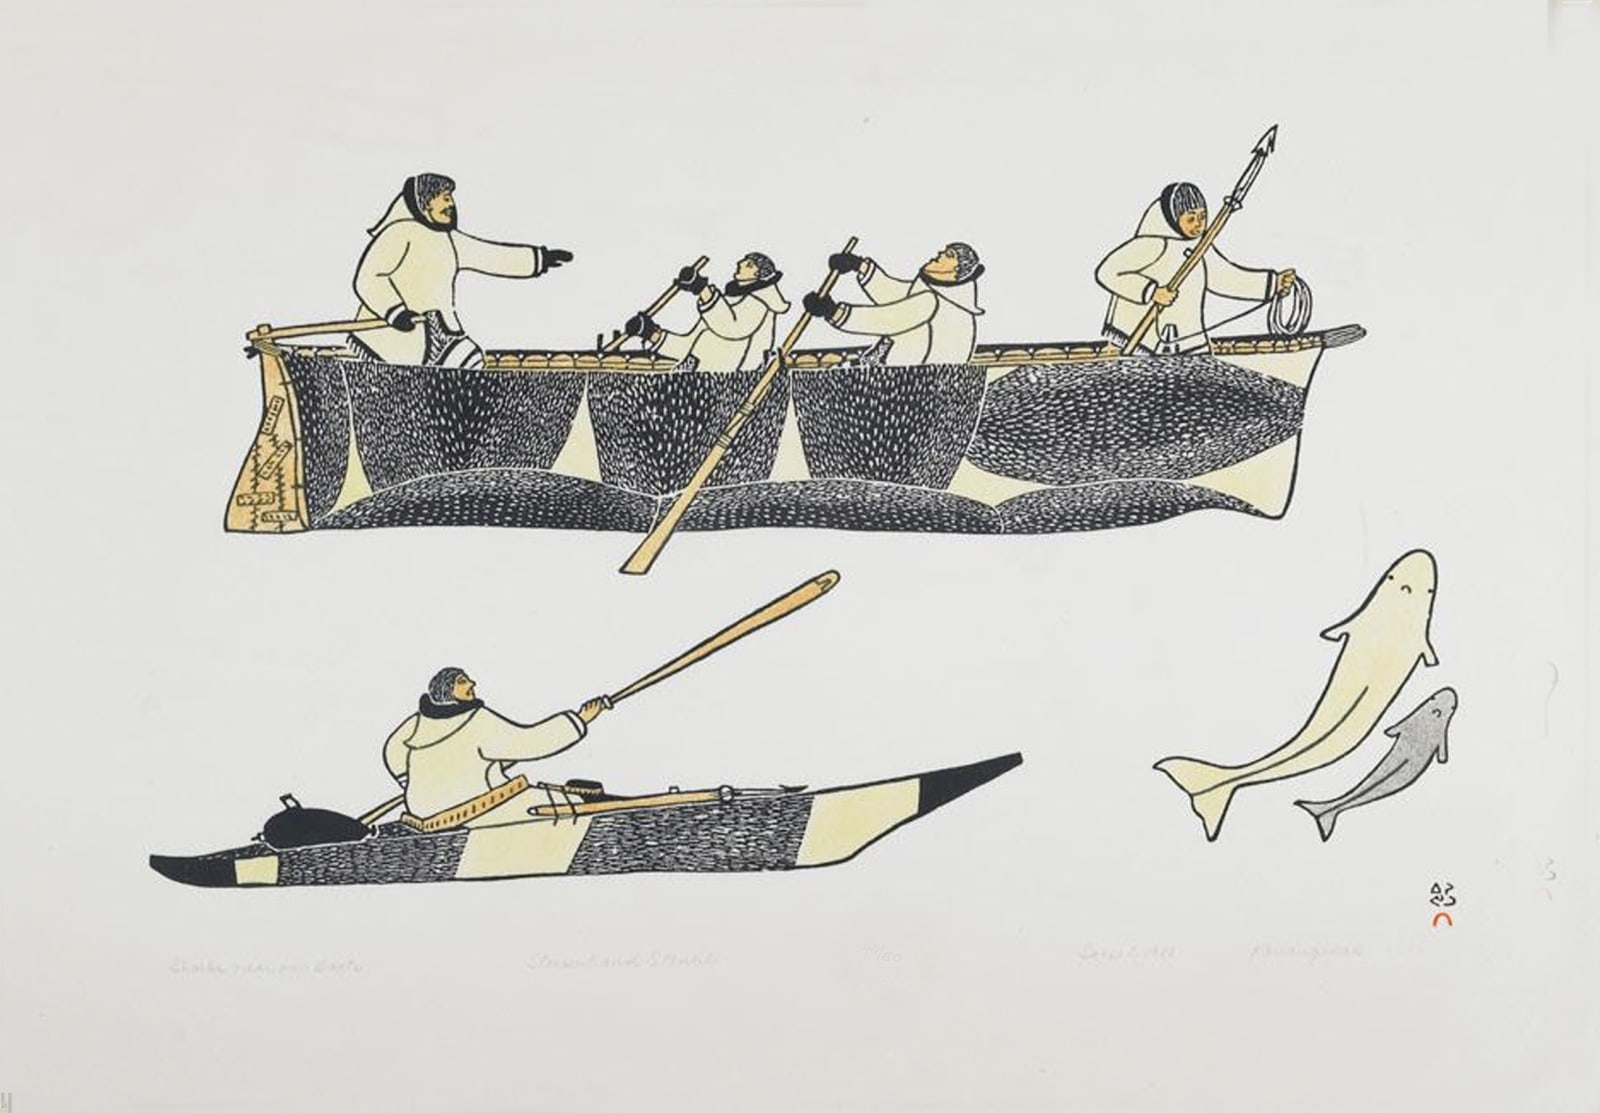 KANANGINAK POOTOOGOOK, R.C.A. (1935-2010) KINNGAIT (CAPE DORSET) Sharks Near Our Boats, 1981 stonecut and stencil, framed, sight: 21 x 31 in (53.3 x 78.7 cm) Estimate: $500 — $800 New Price: $300